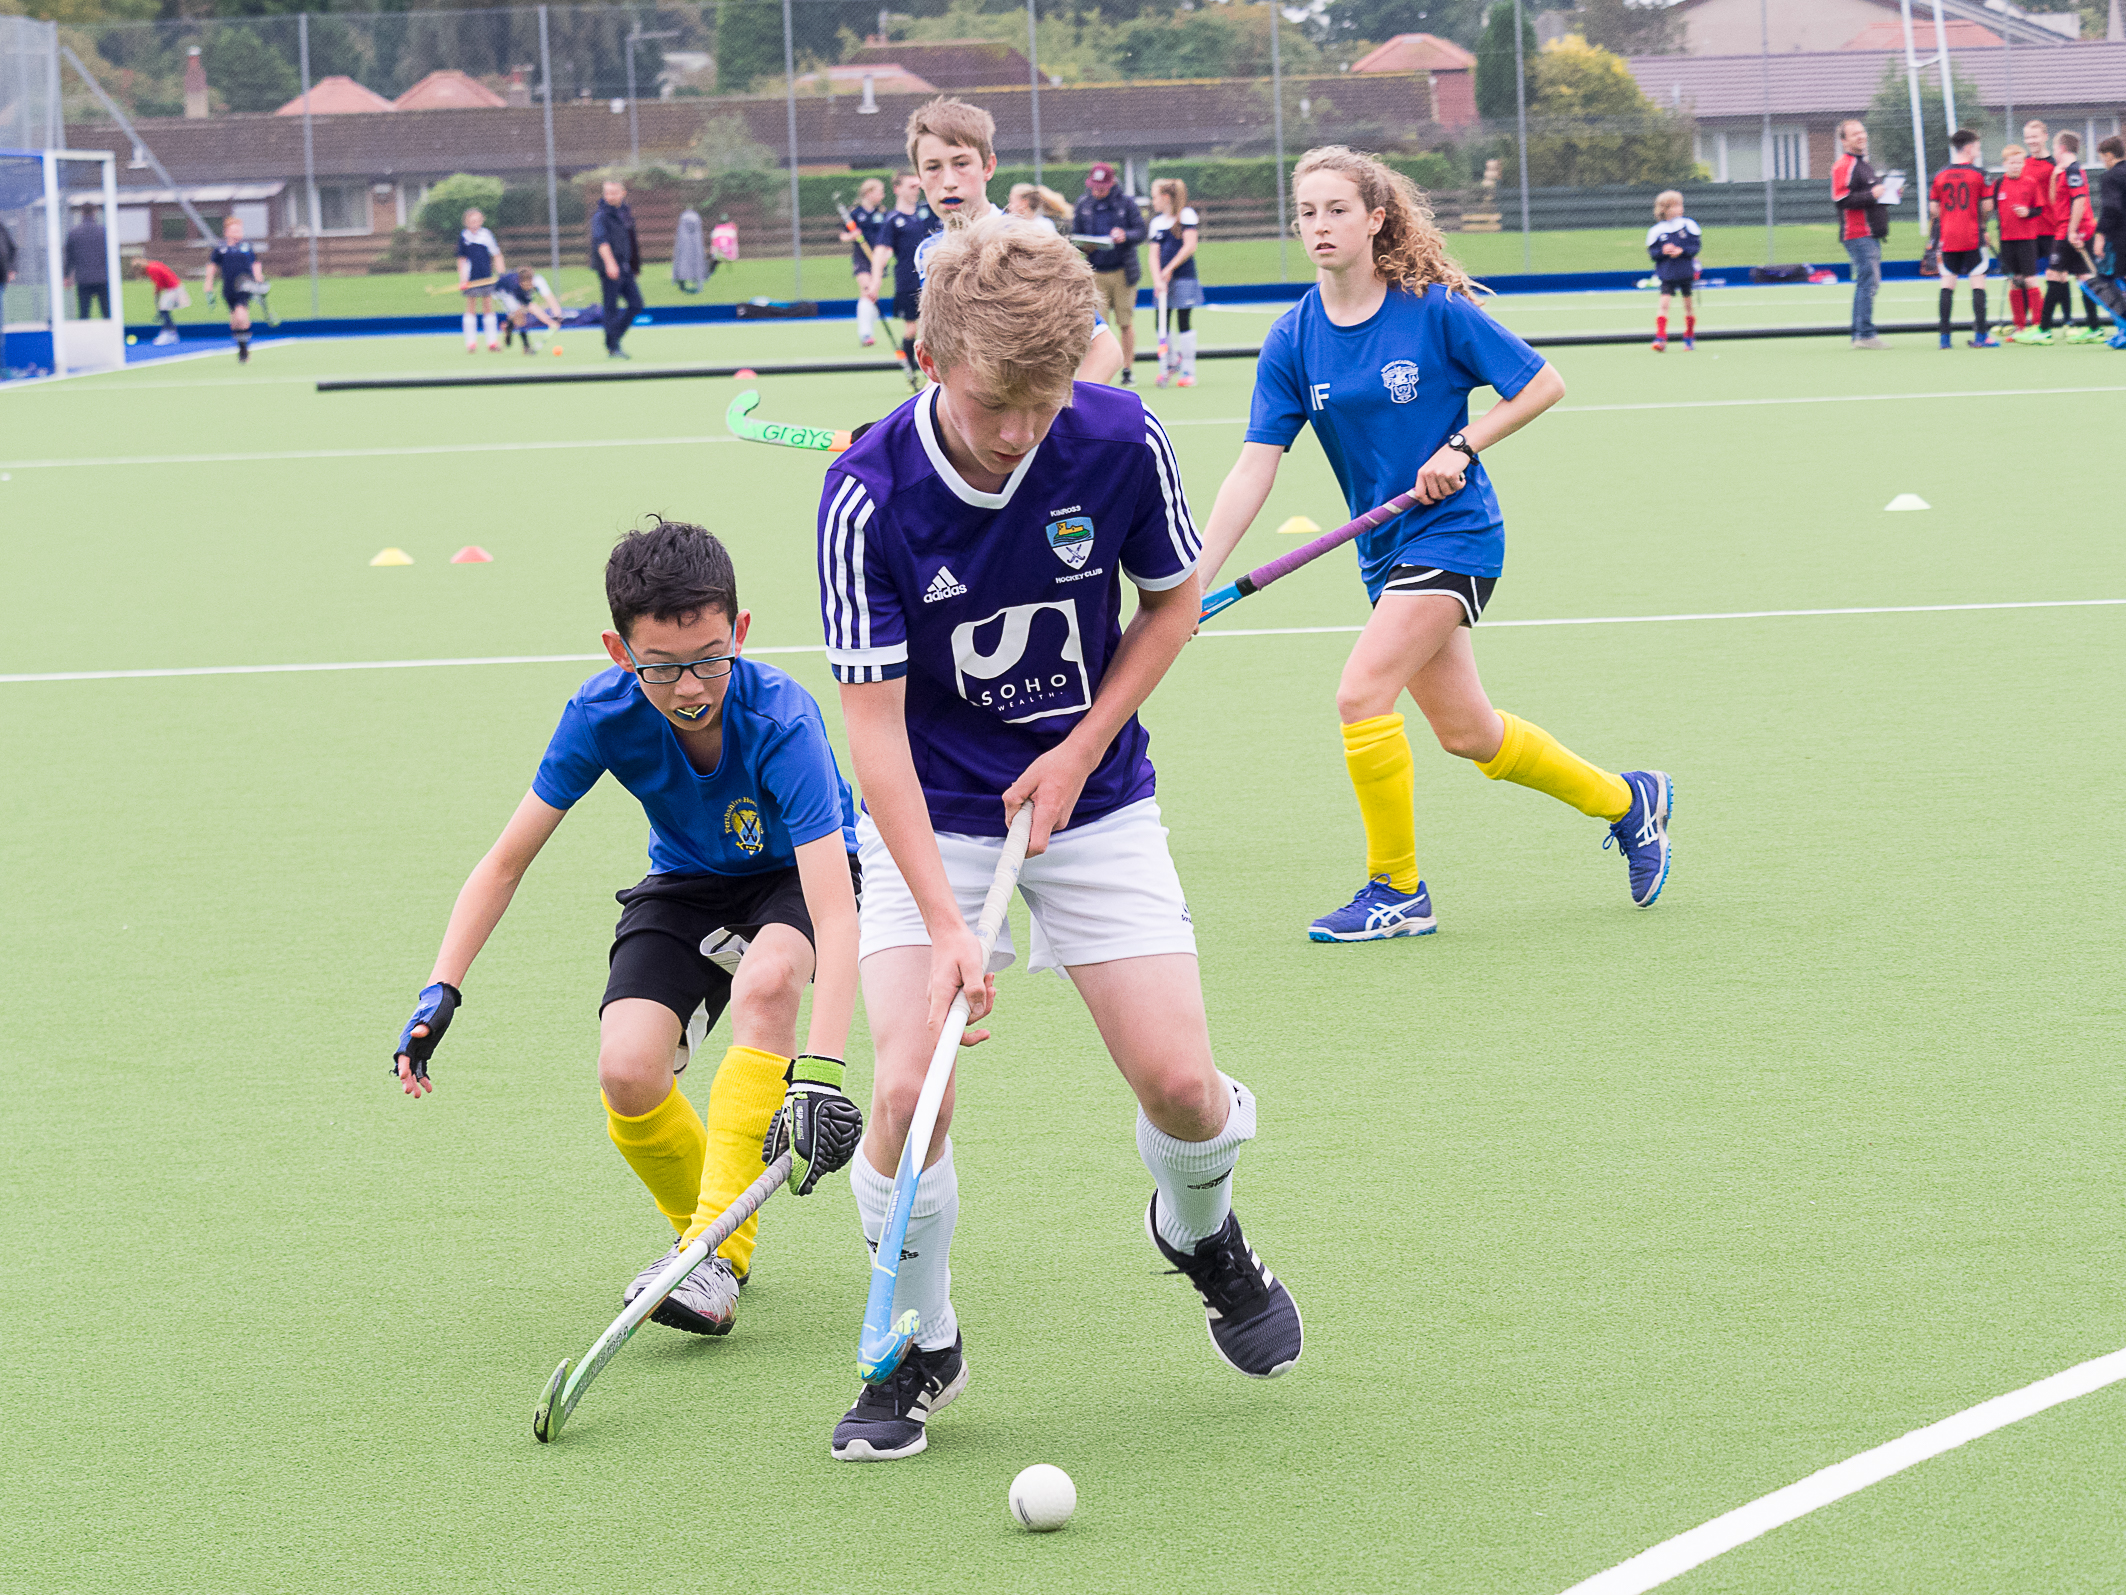 Hockey Kinross Sept 24th-34.jpg